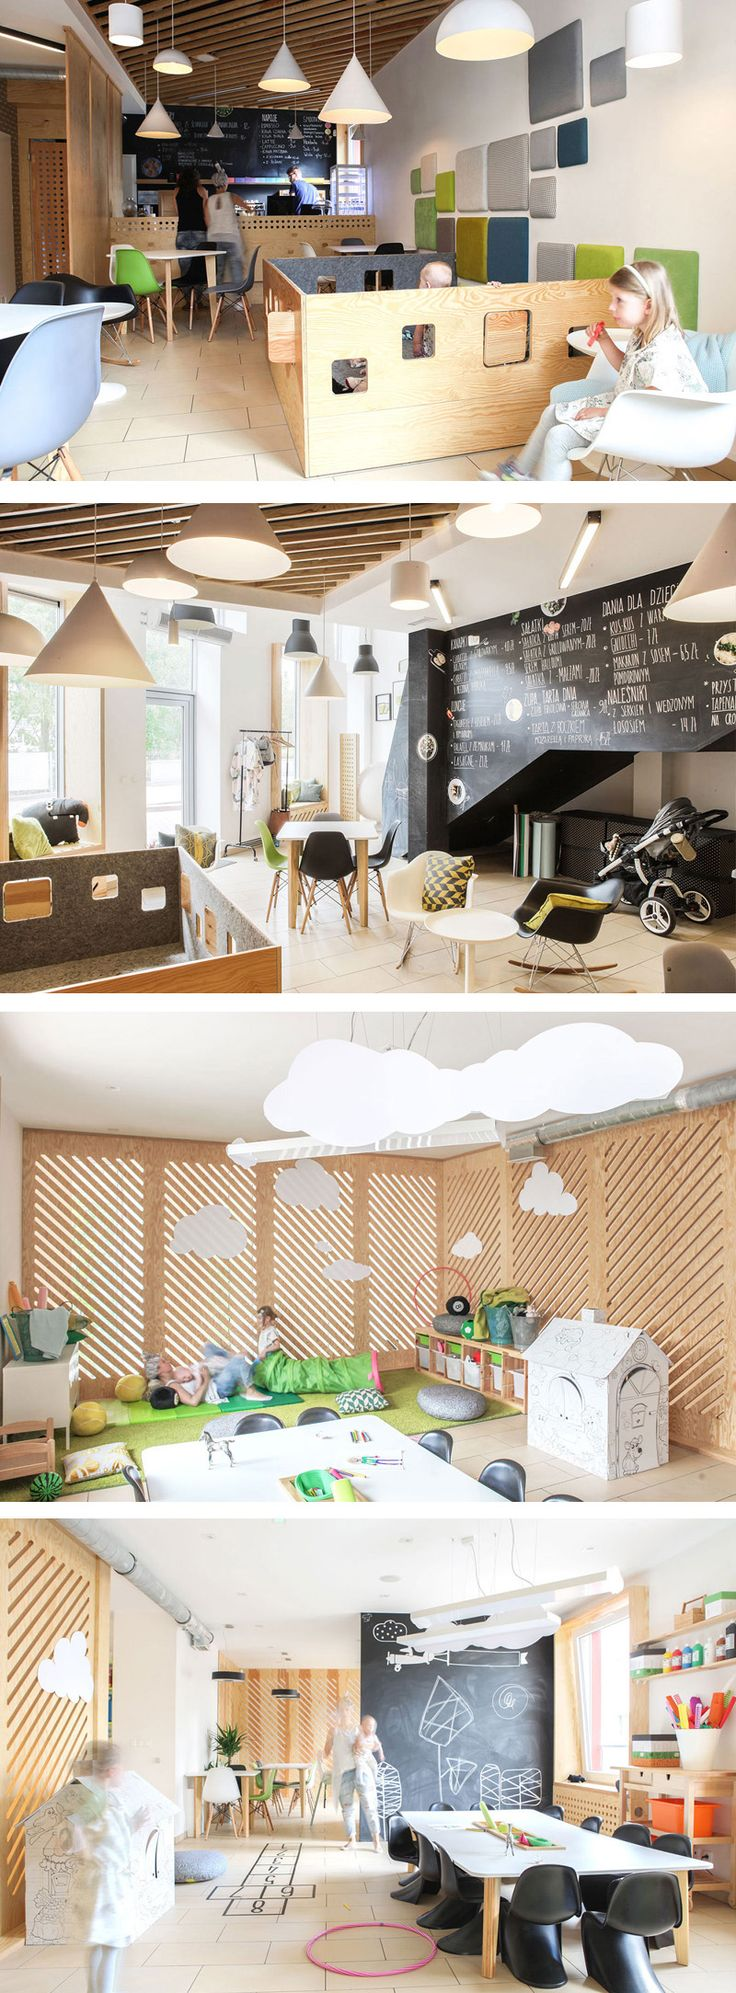 best 25+ top cafe ideas on pinterest | eat cafe, one cafe and